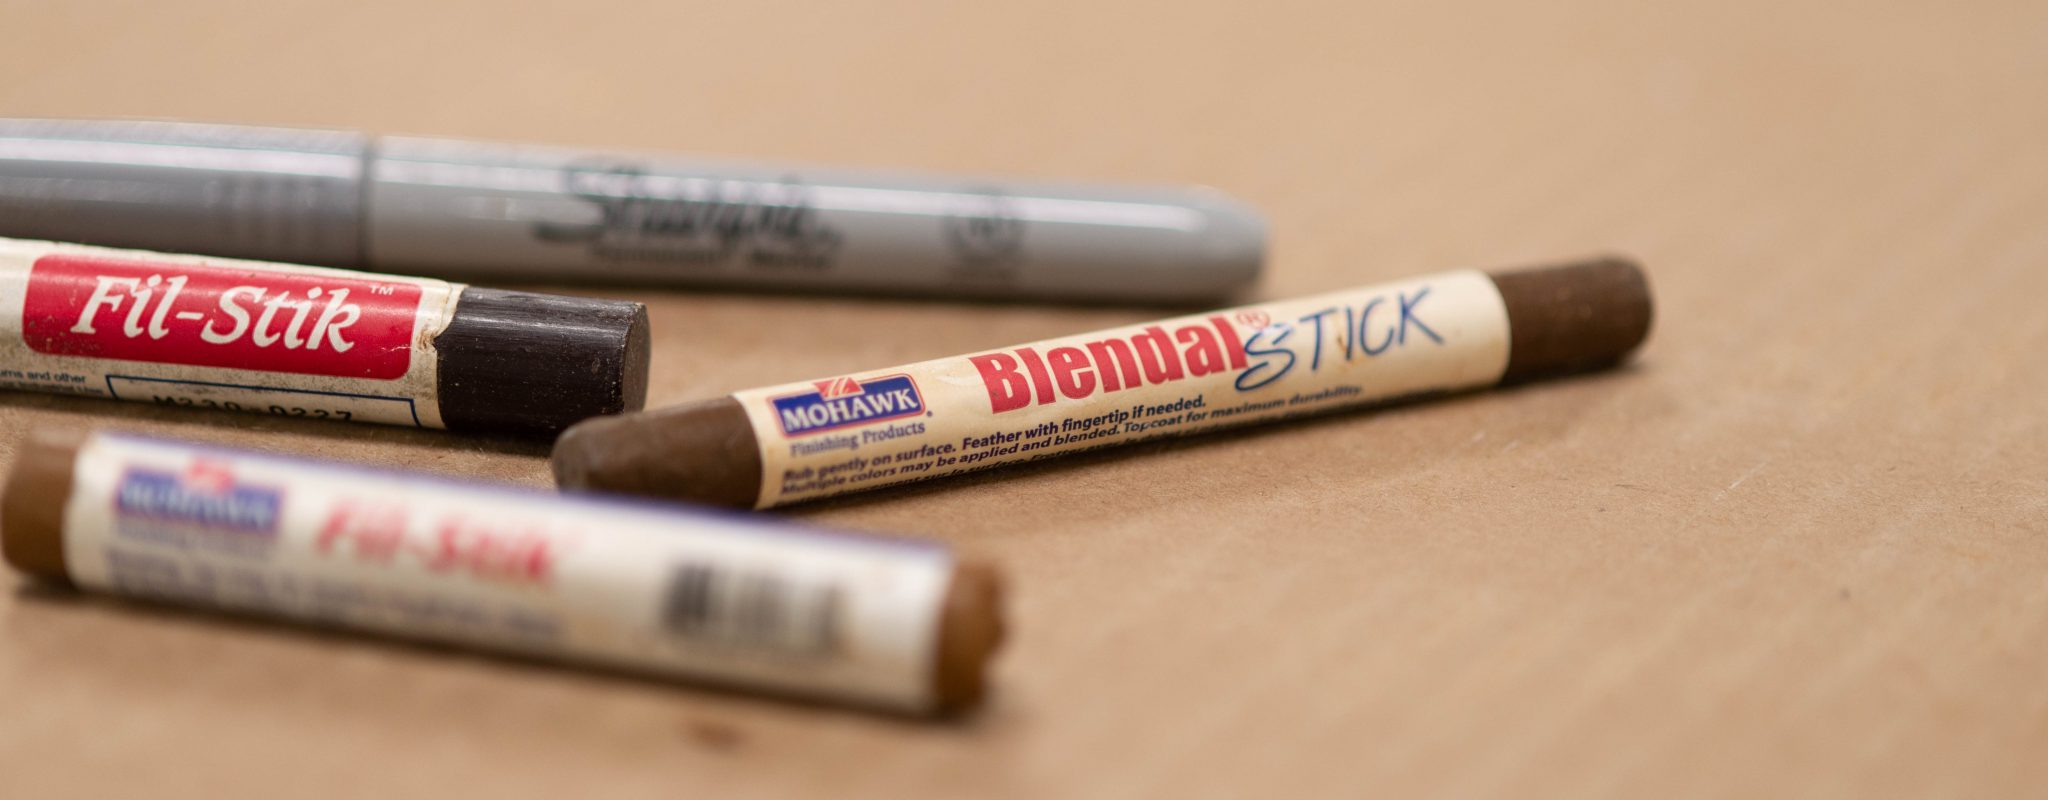 Blendal sticks are a must for quick wood ceiling repairs